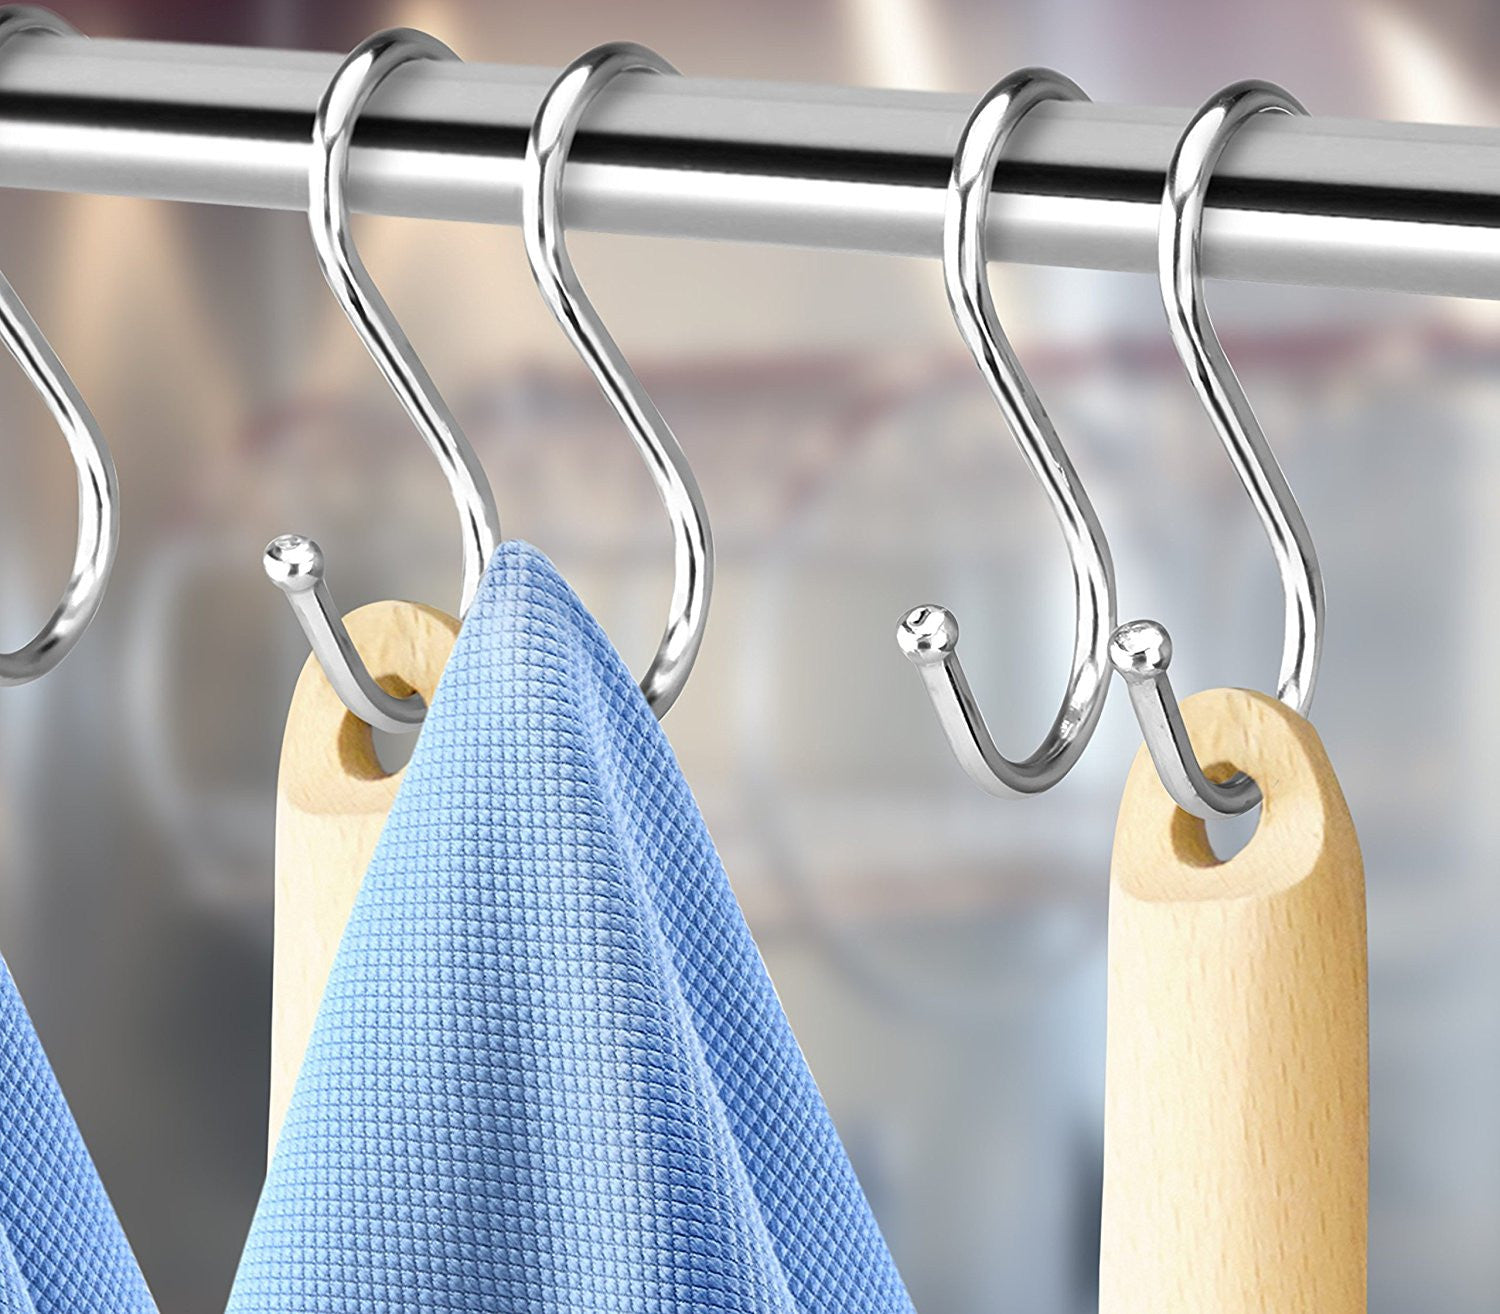 Review windows 10 mobile build 14328 windows clip60 - Hanging Kitchen Tools Pro Chef Kitchen Tools Stainless Steel S Hooks Set 10 Double Hanging